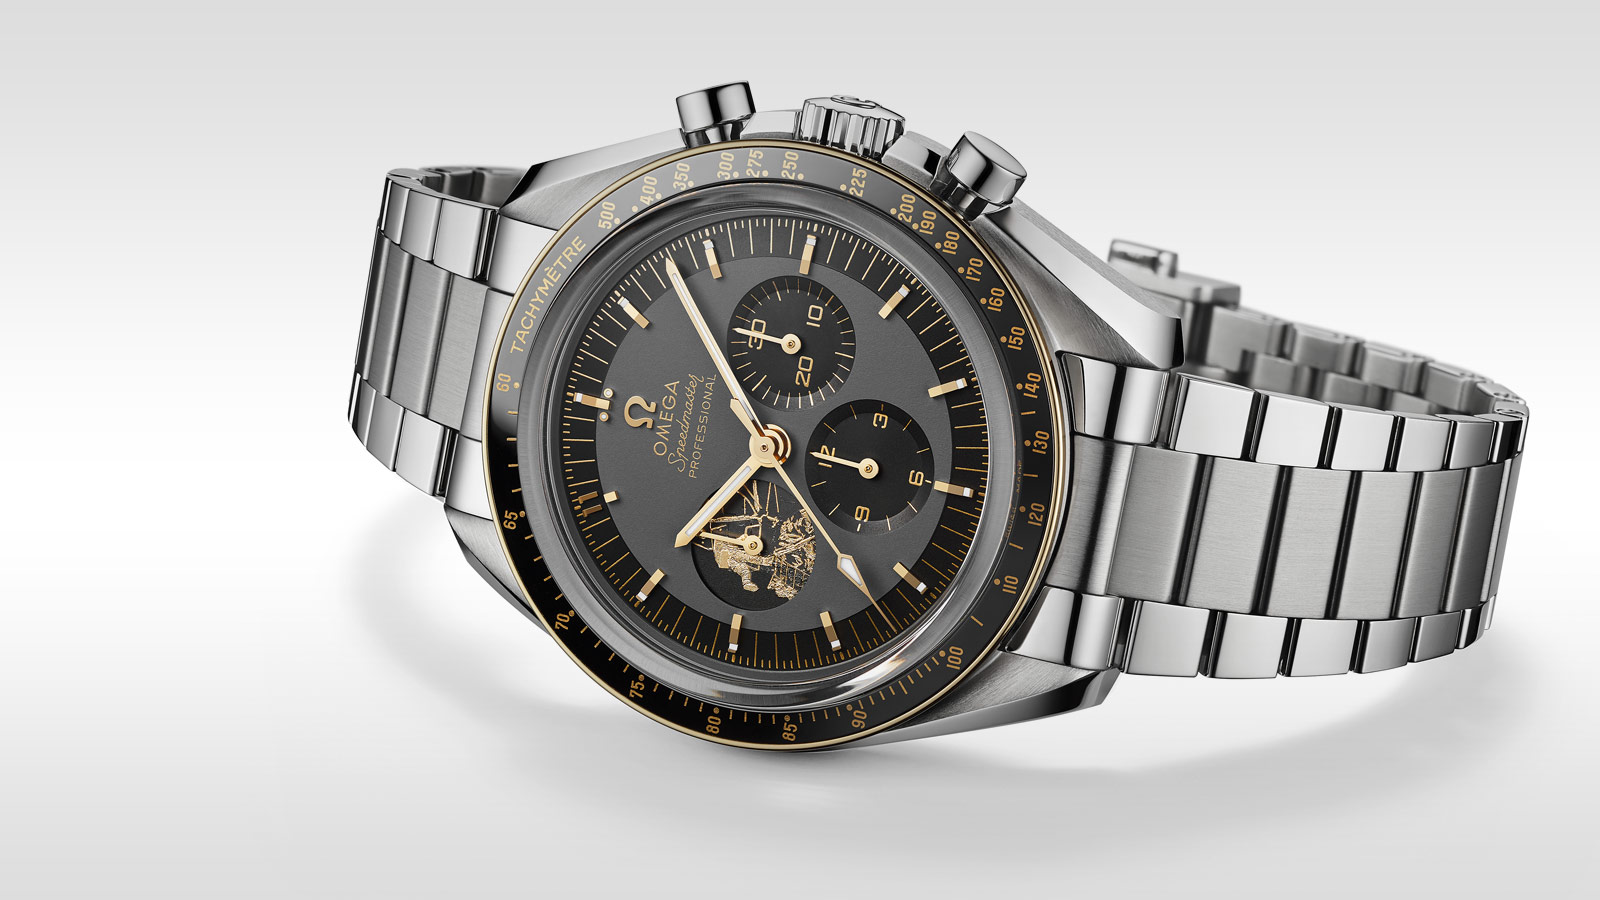 Best Quality Replica Omega Watches